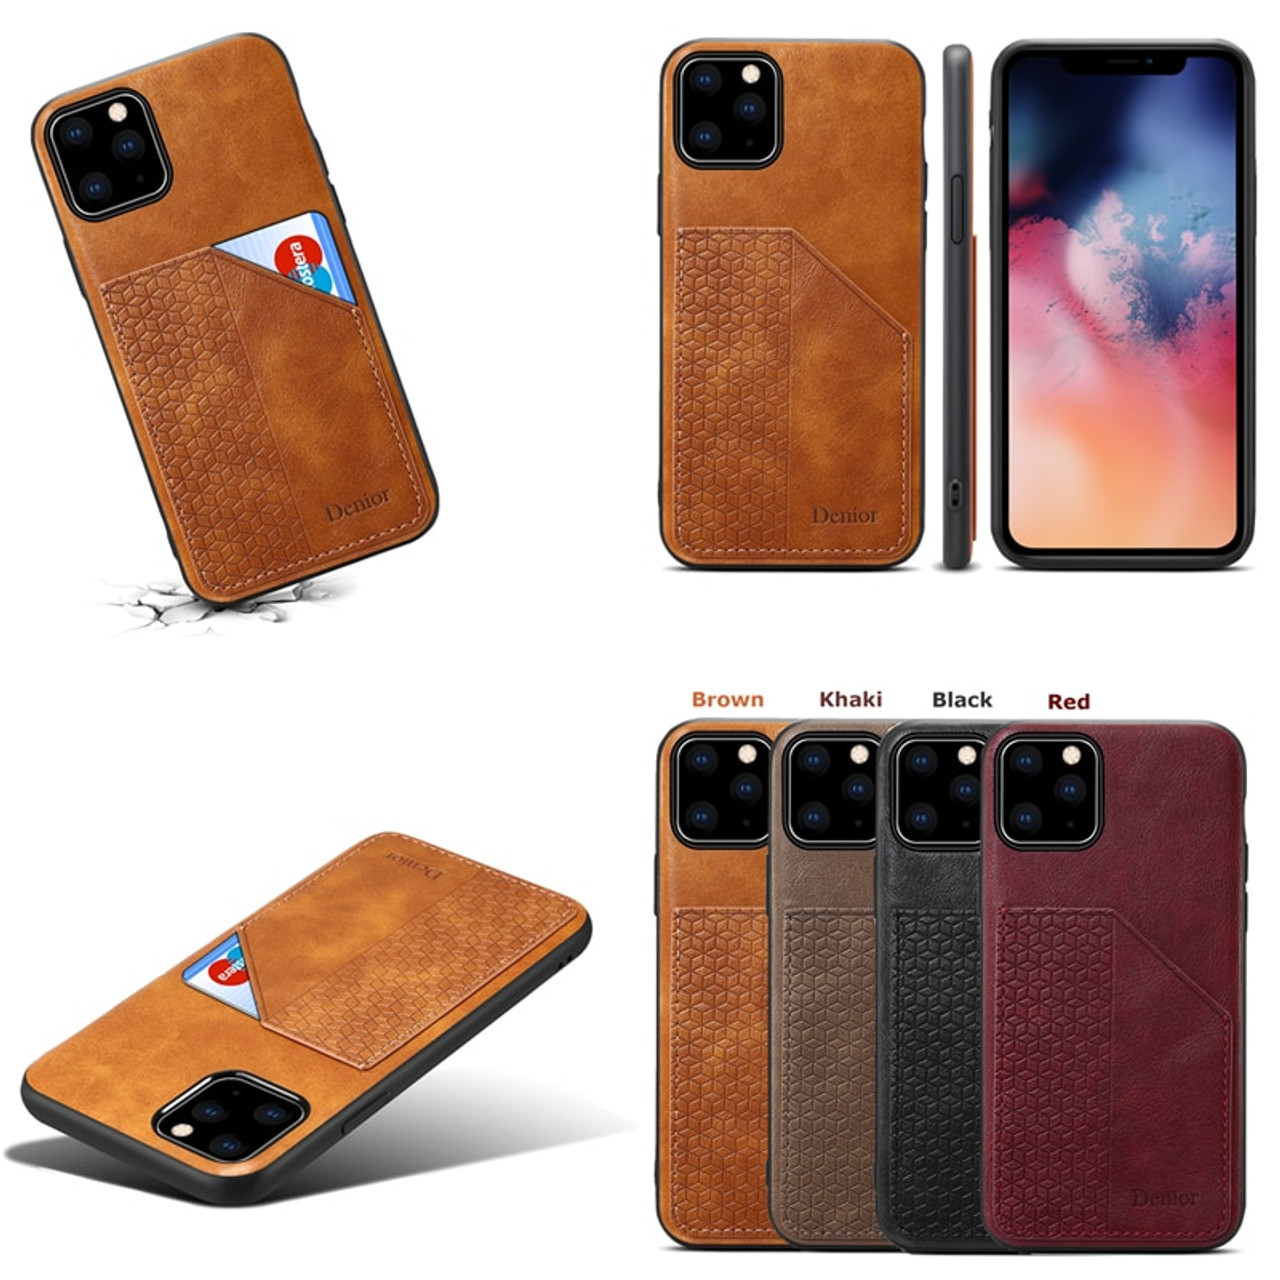 iPhone 11 Flip Case Cover for Leather Wallet Cover Card Holders Luxury Business Kickstand Flip Cover